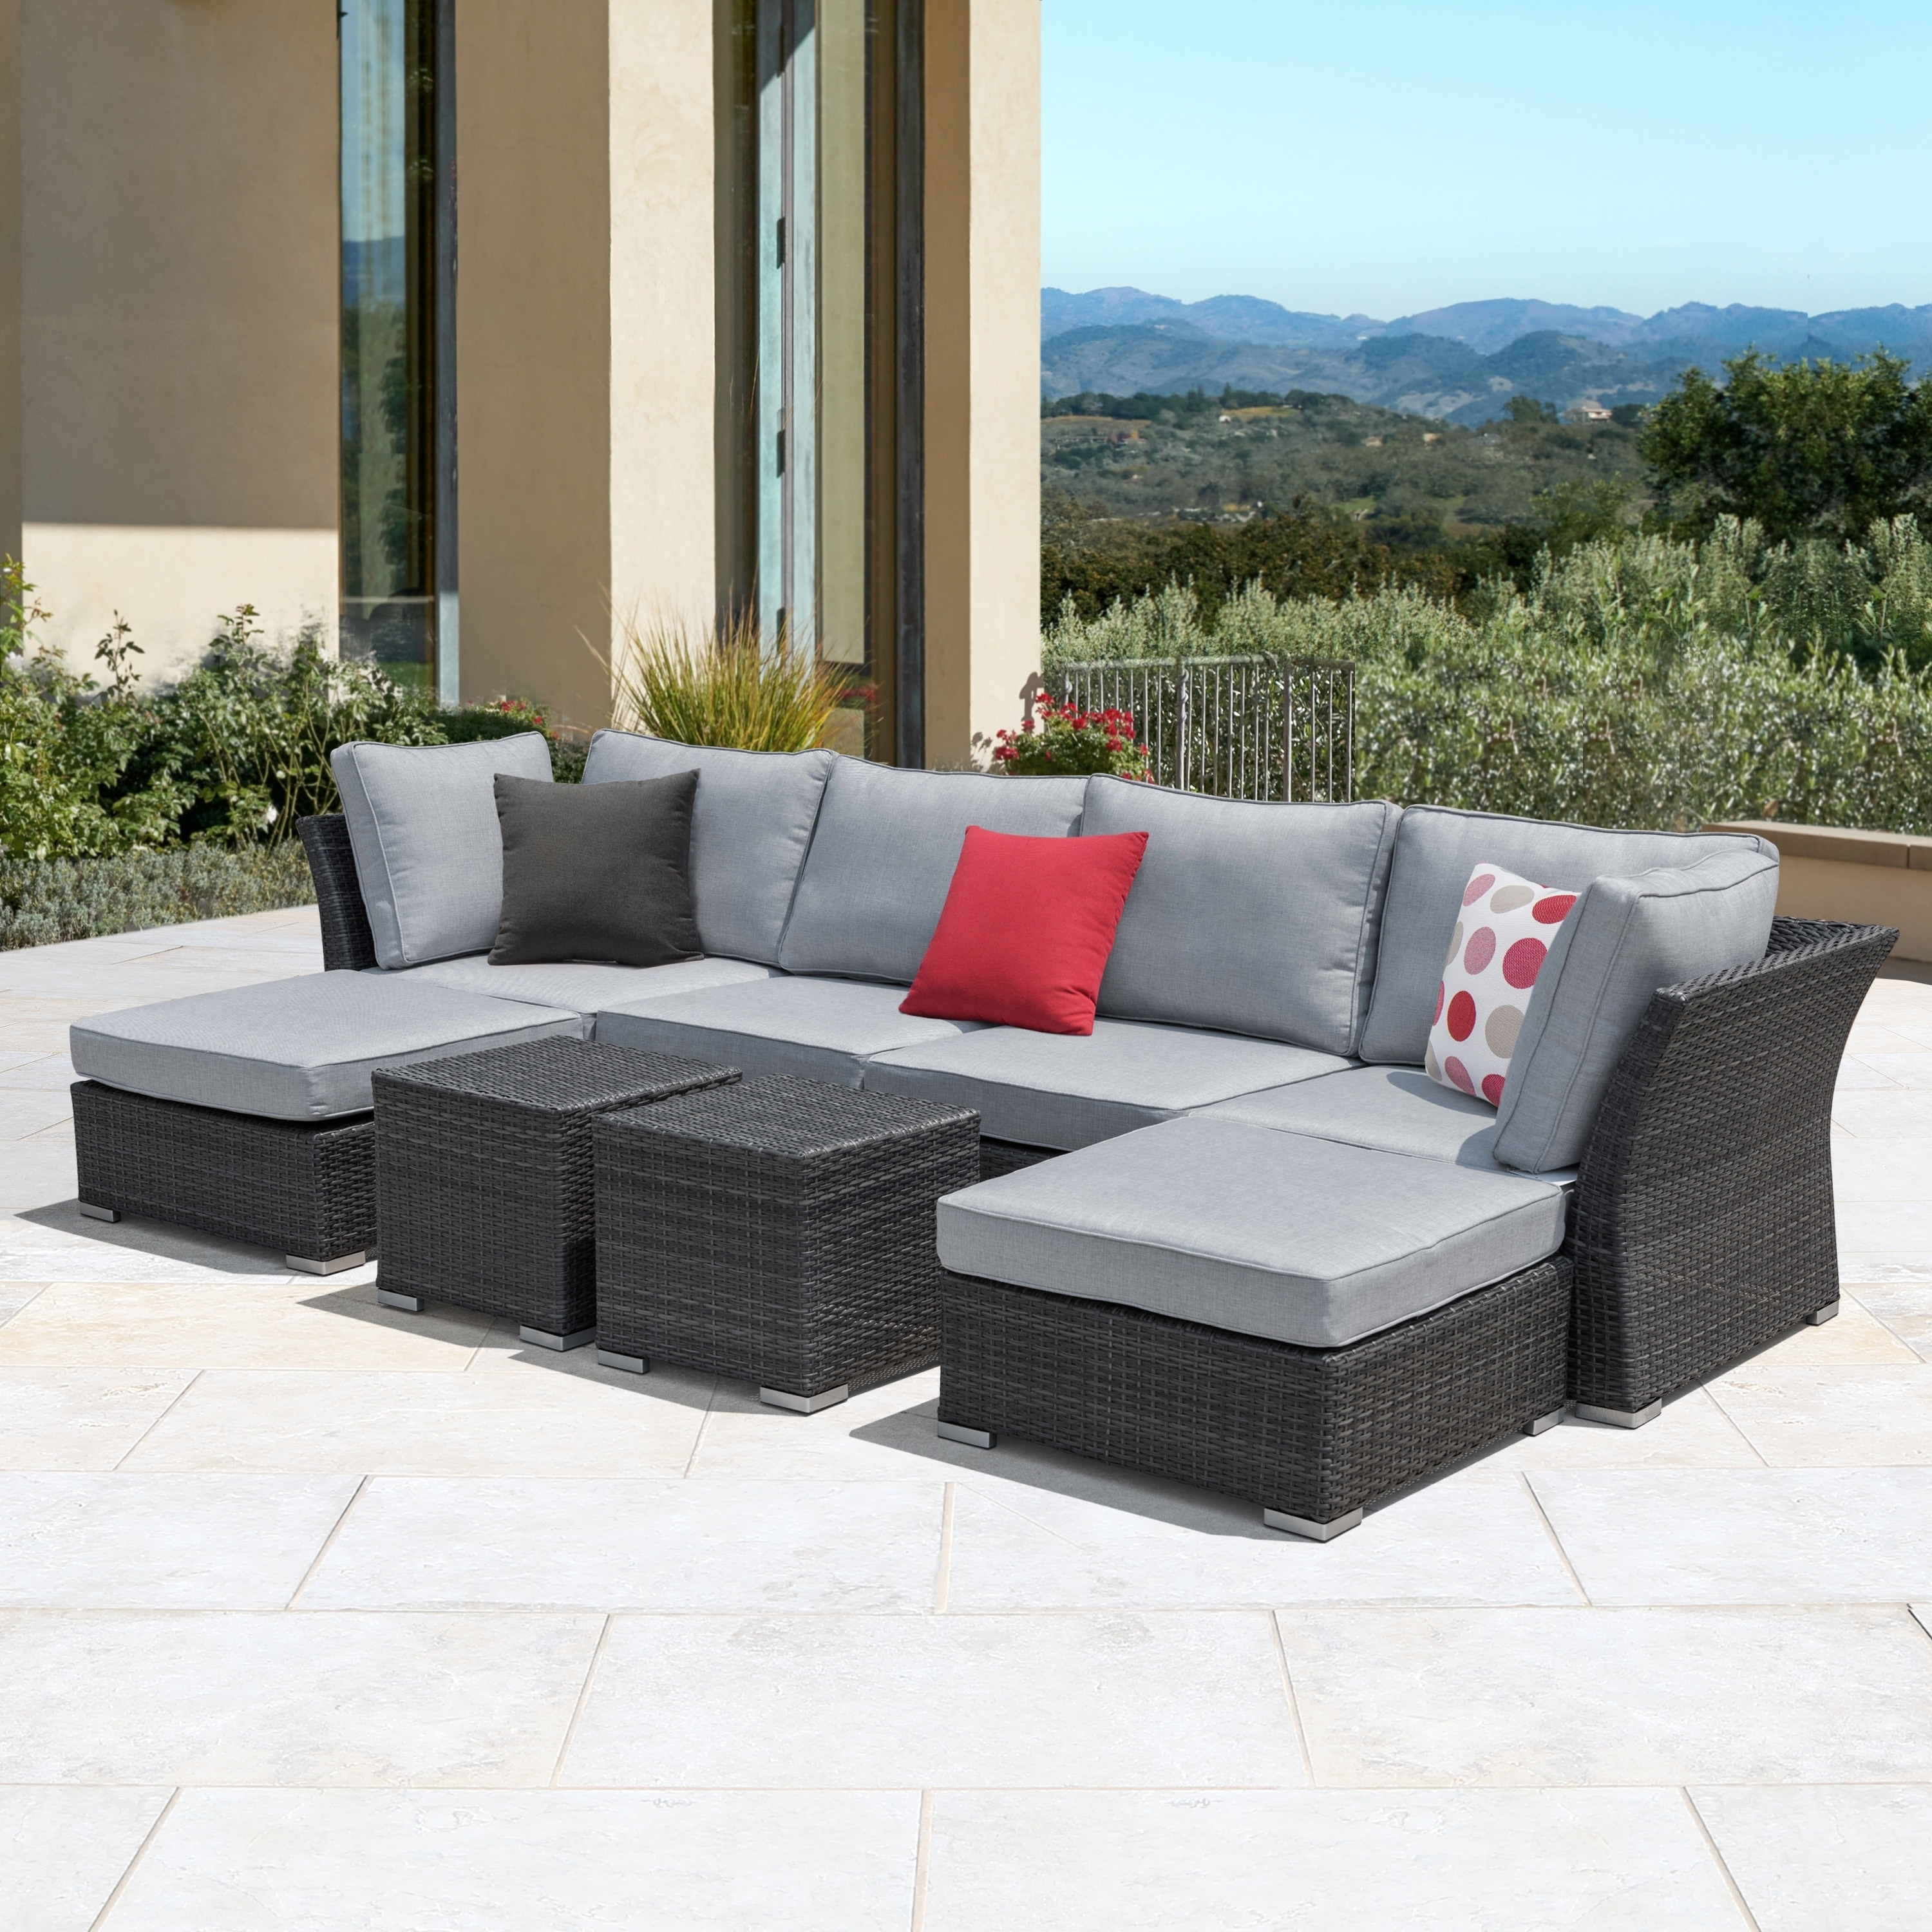 Shop corvus 8 piece grey wicker patio furniture set with blue cushions on sale free shipping today overstock com 12653586